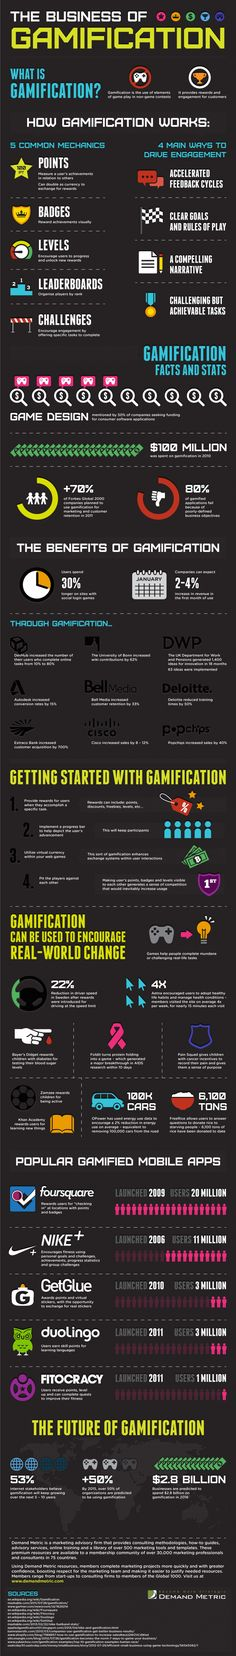 Infographic: The Business of Gamification #infographic